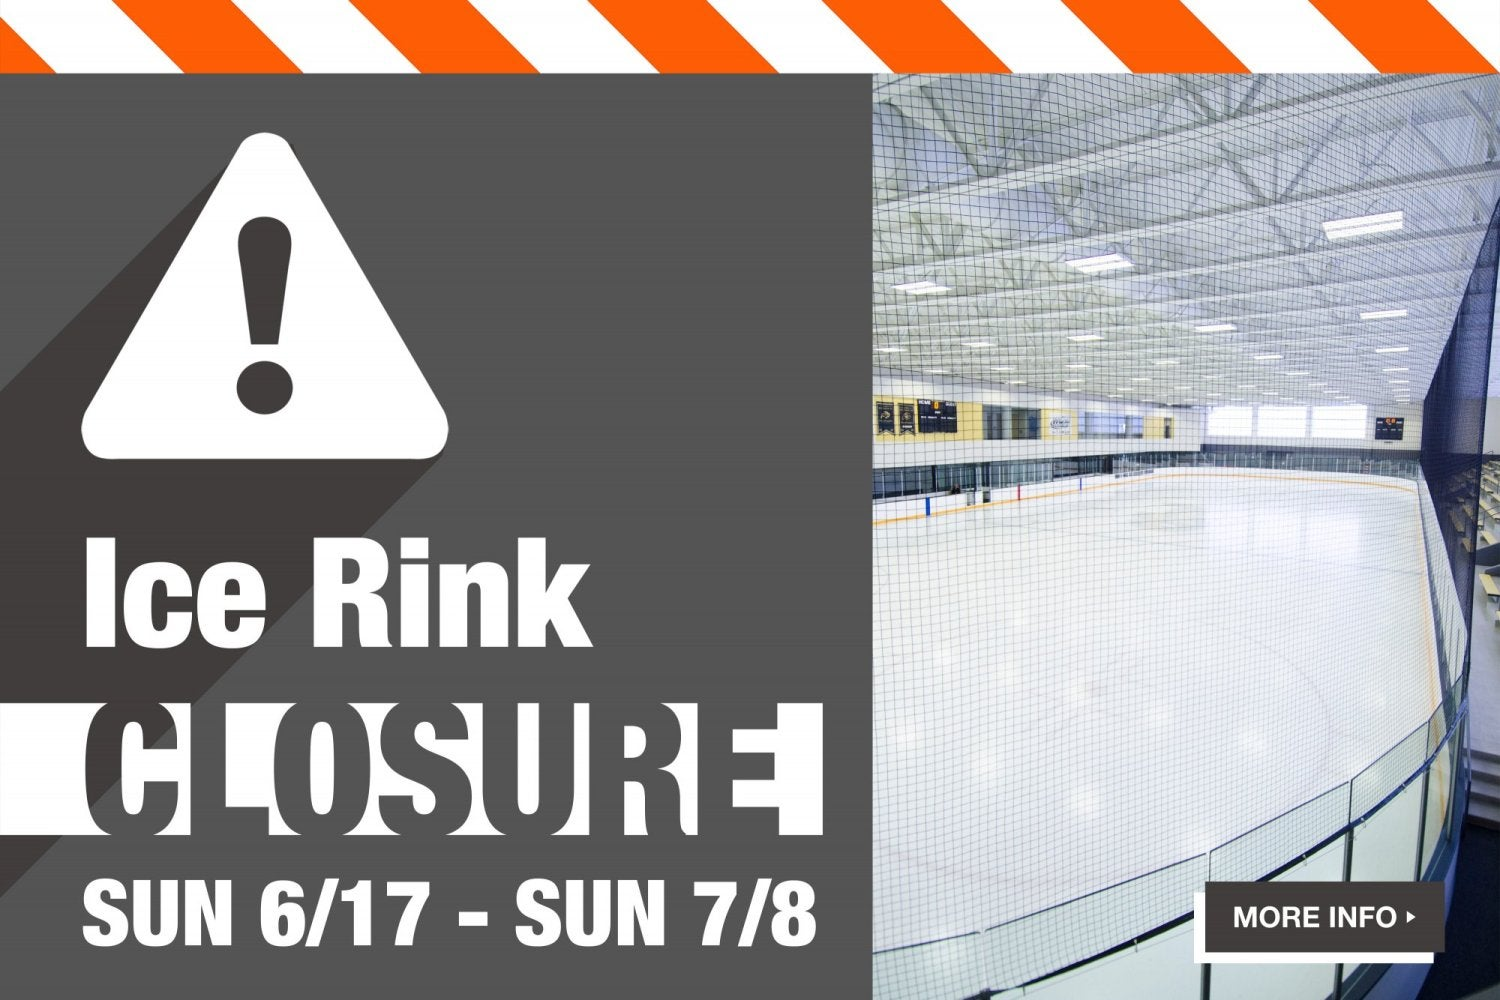 Ice rink closure.  click for more information